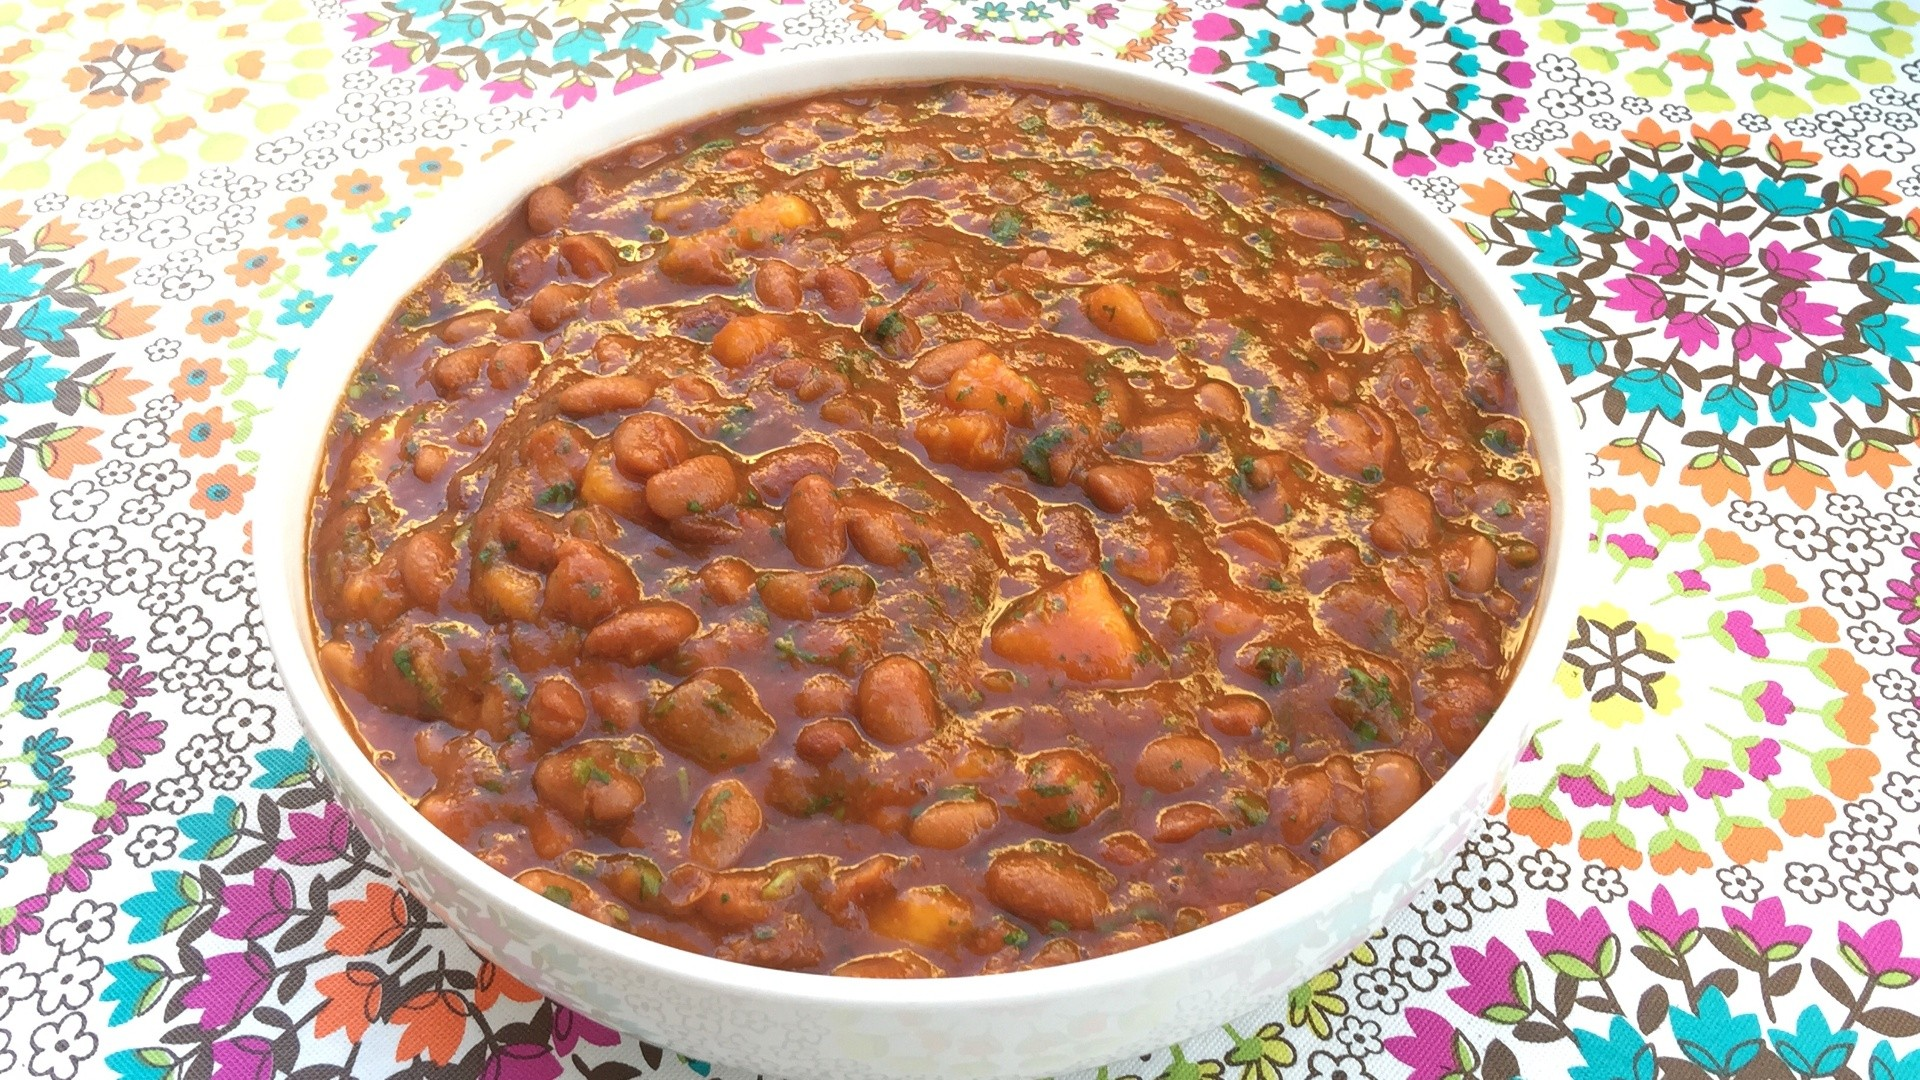 Summertime Slow Cooker BBQ Beans Featured Image - © ProtectiveDiet.com